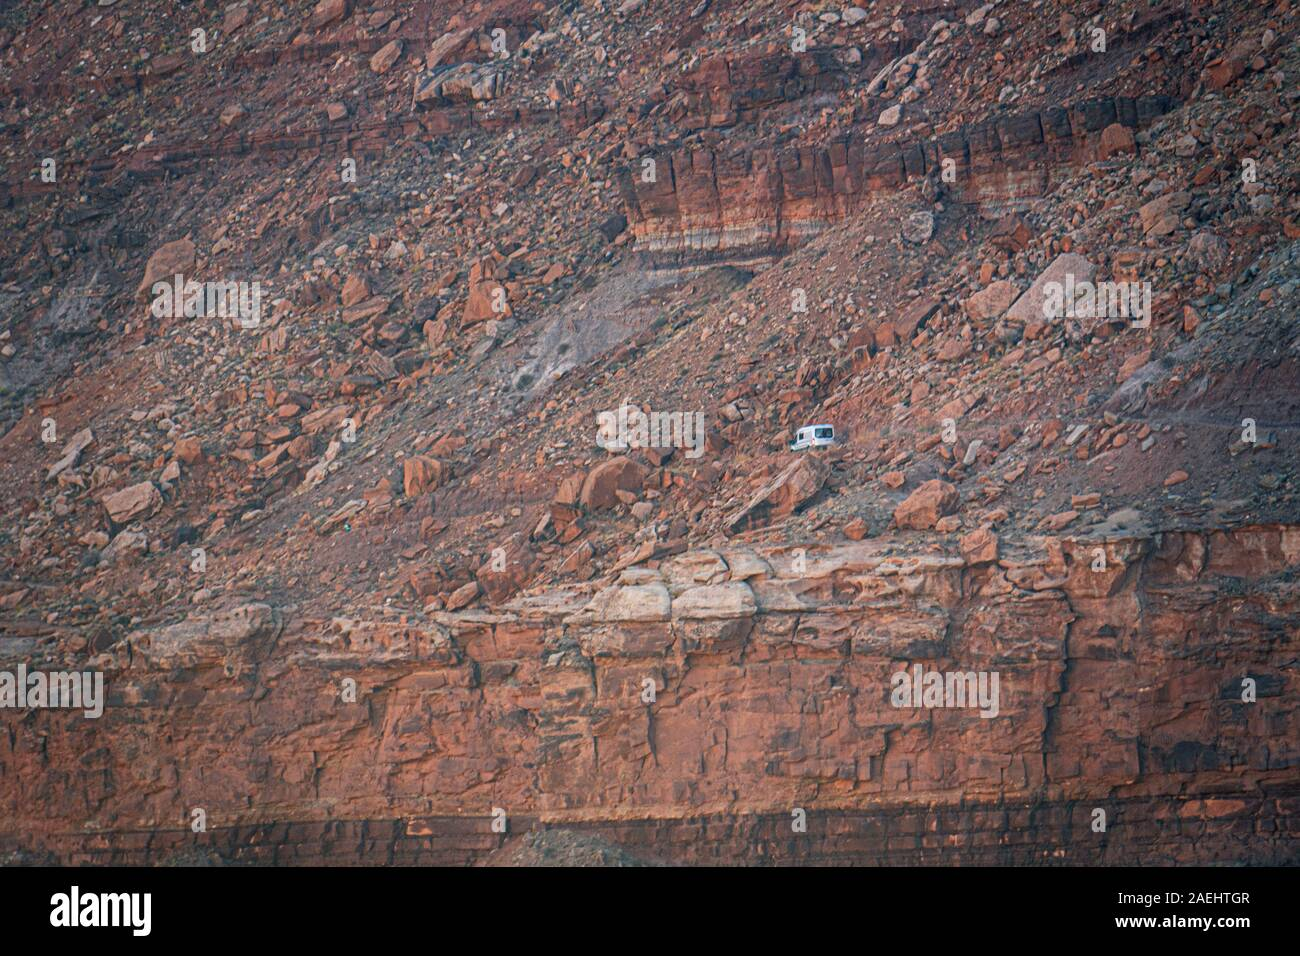 A van on the White Rim Trail, Canyonlands National Park Stock Photo